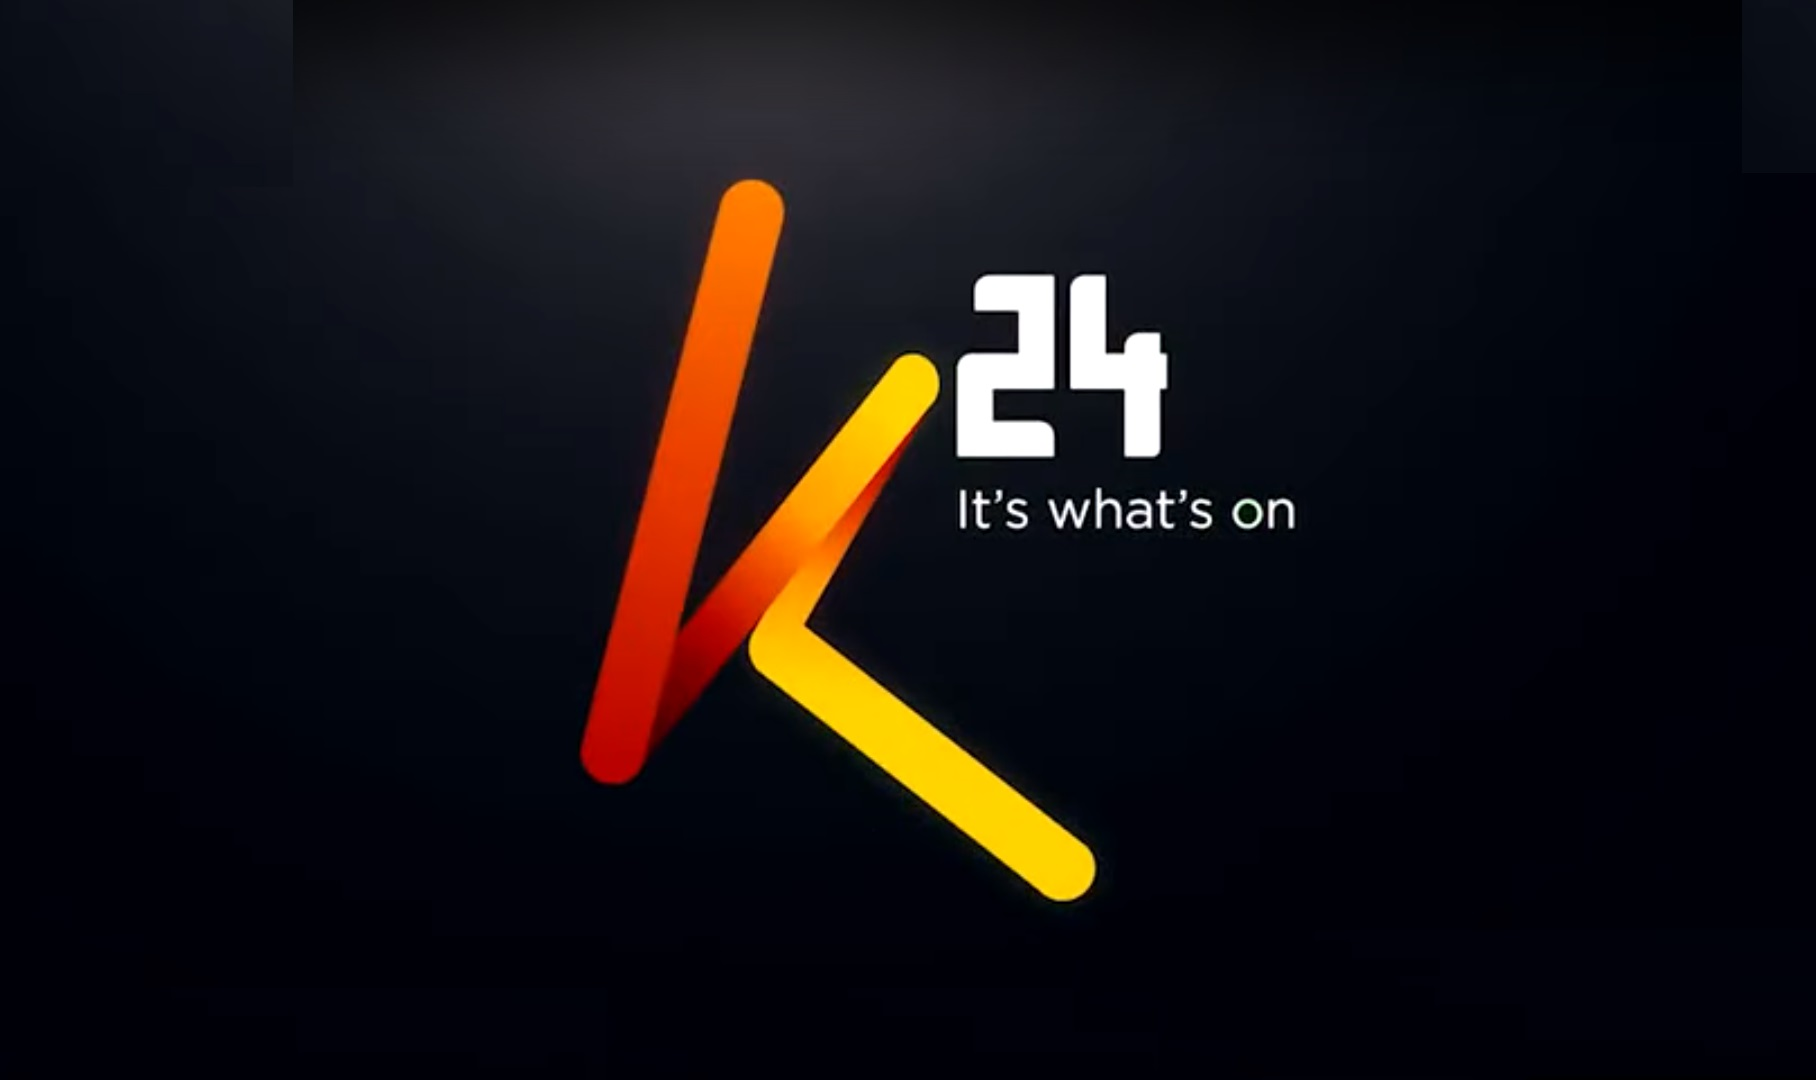 The new K24 logo after it relaunched a few months ago. Despite the new look, the company has fired 160 employees as it scales back to tame costs. www.businesstoday.co.ke